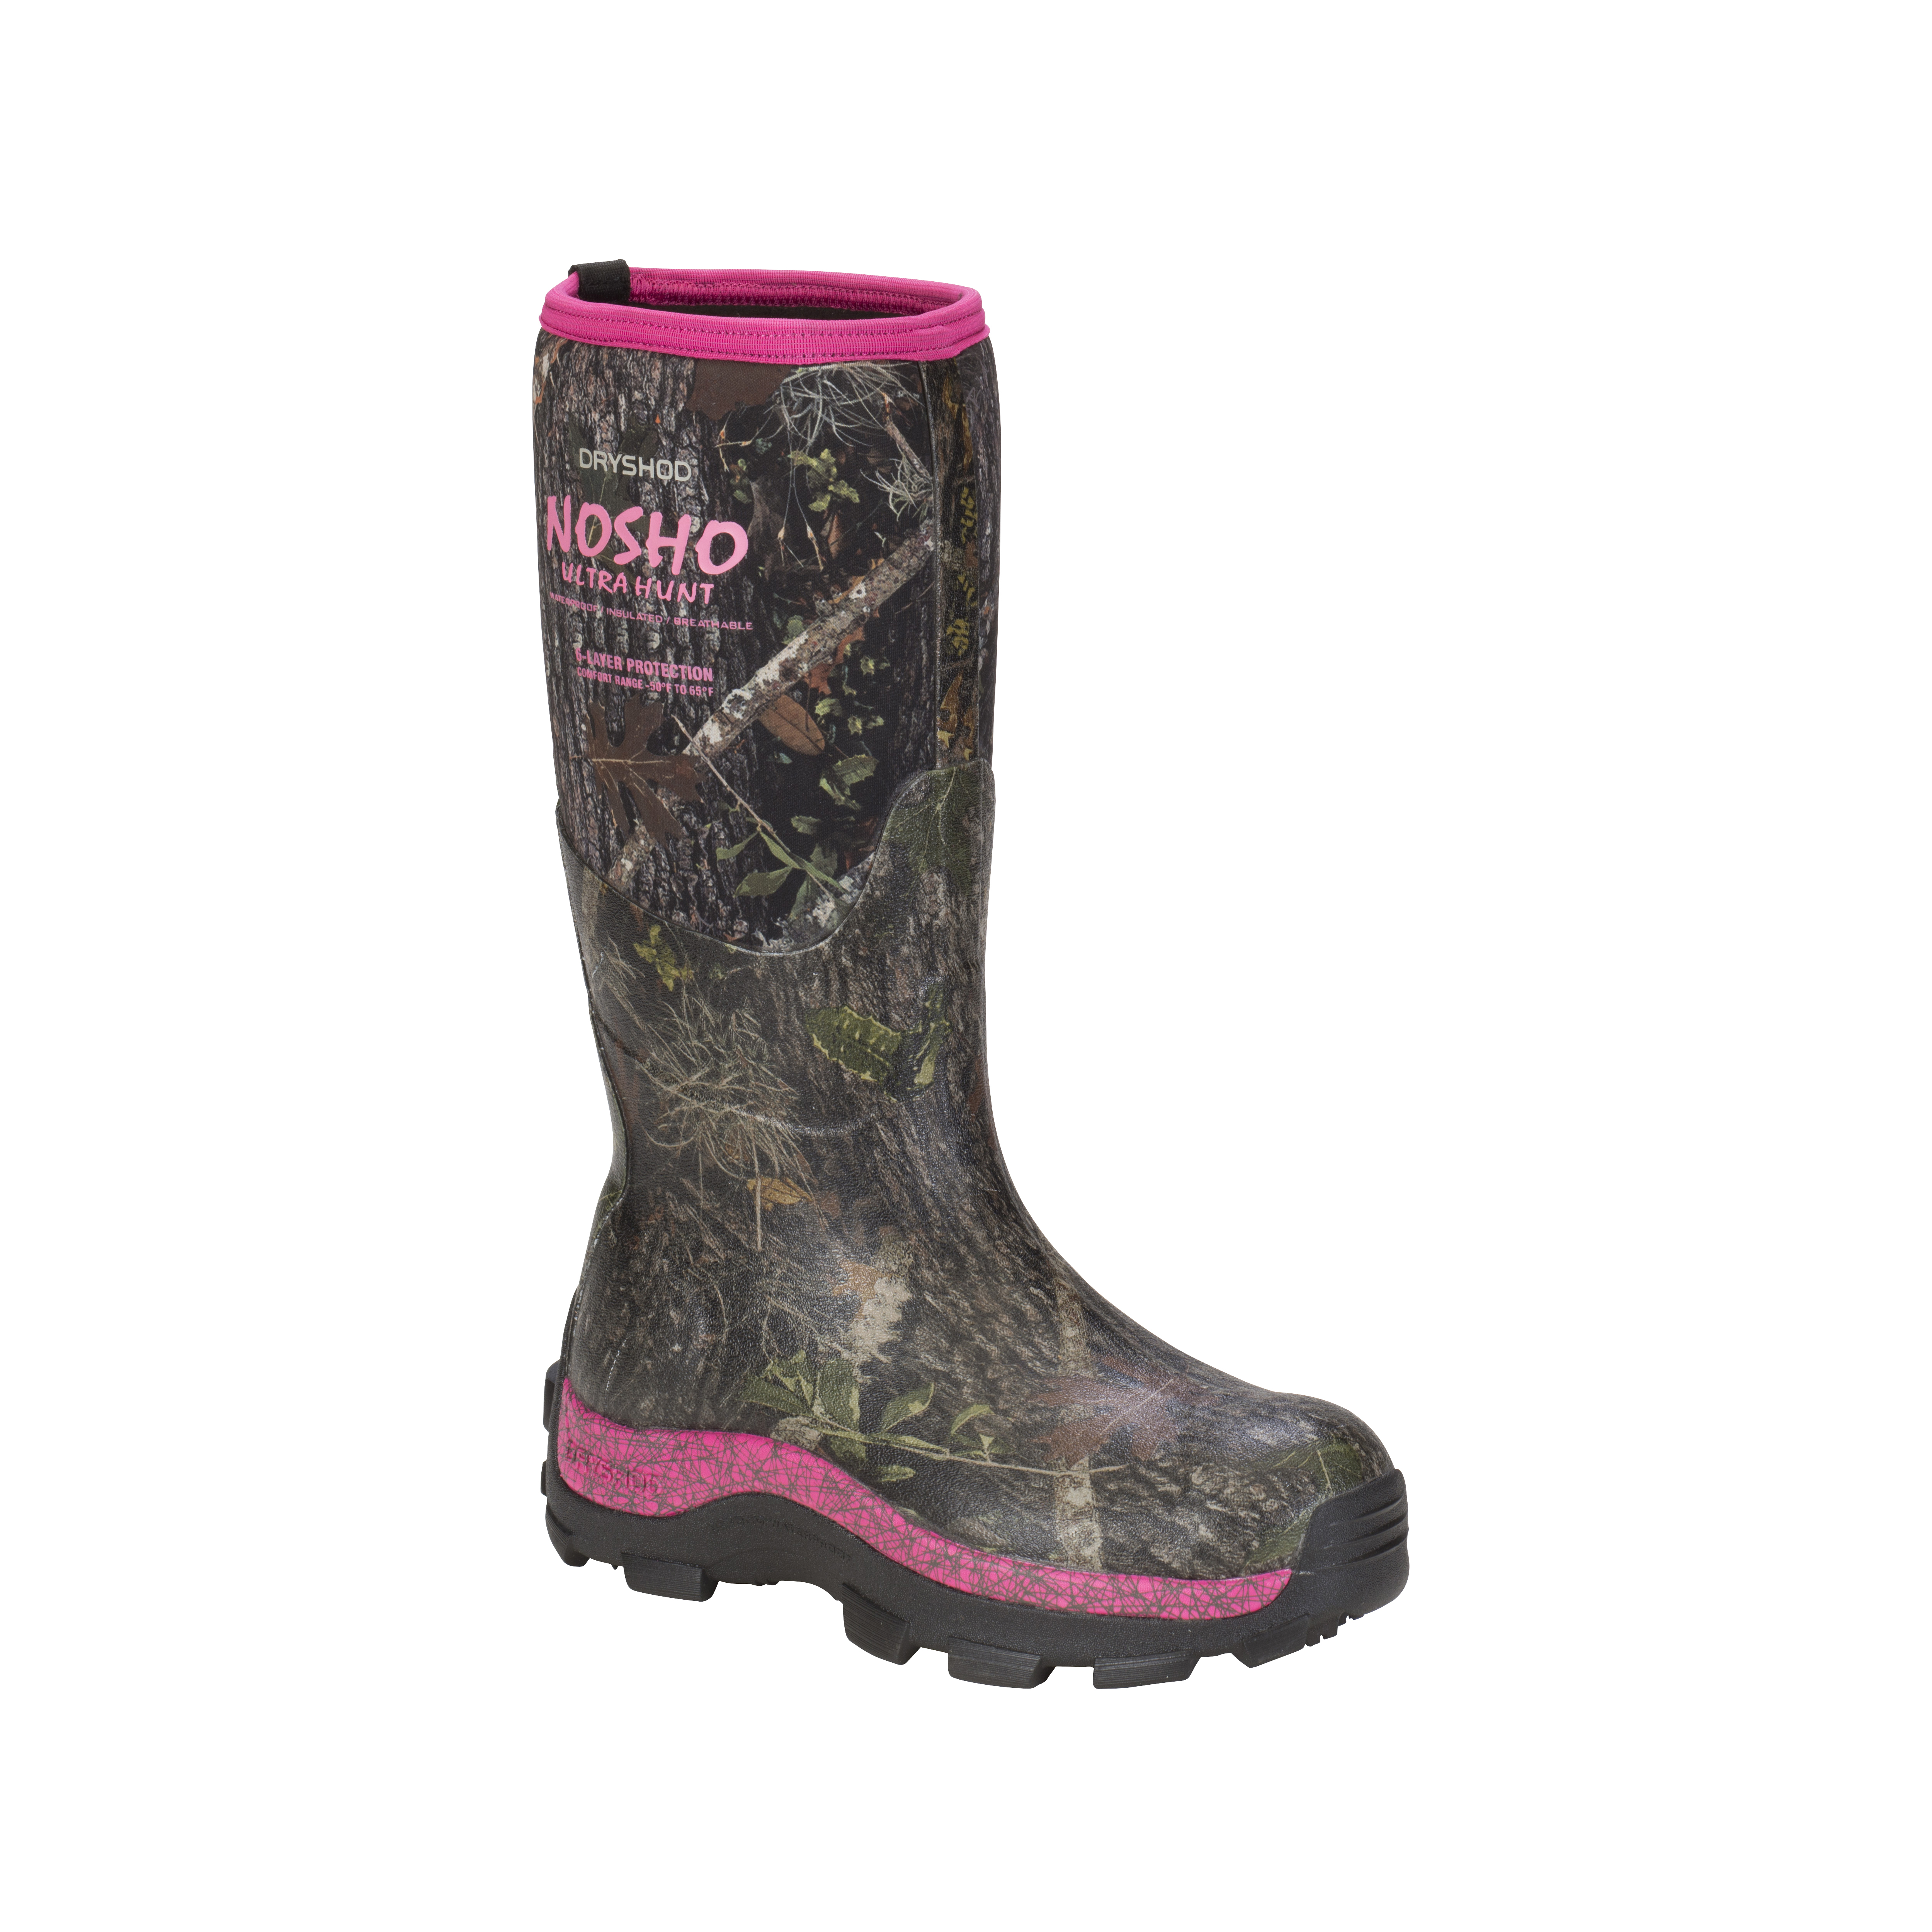 Dryshod Women's NoSho Ultra Hunt Camo Extreme Cold-Condition Boots - Hi Cut - Size 6, Camo/Pink